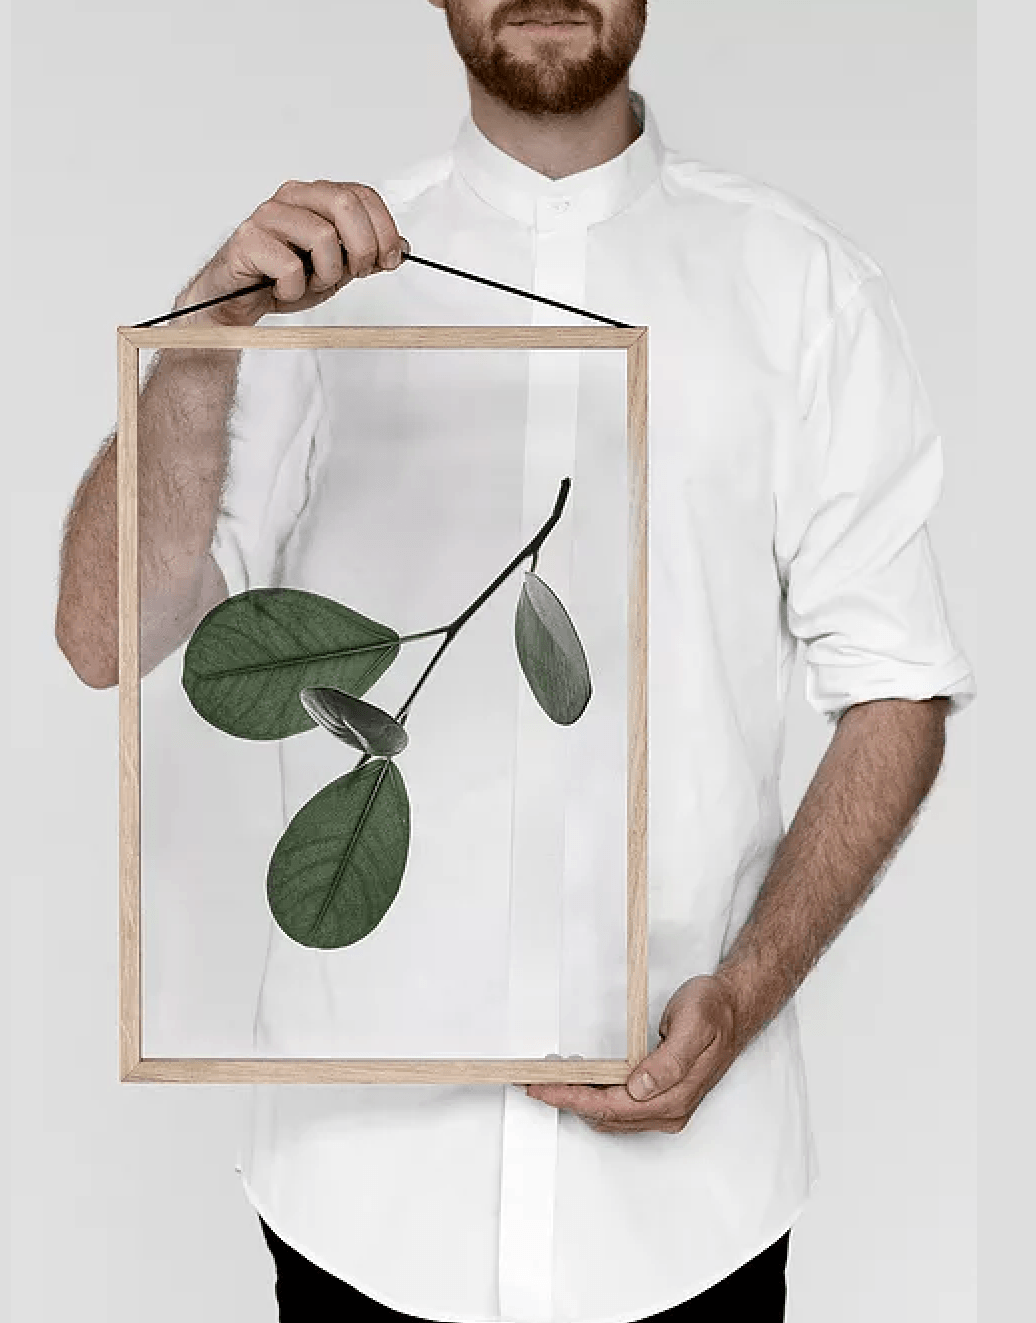 New from Moebein collaboration with Norm Architects and Paper Collective: Floating Leaves, a series of modern framed botanicals. (See also:Current Obsessions.)